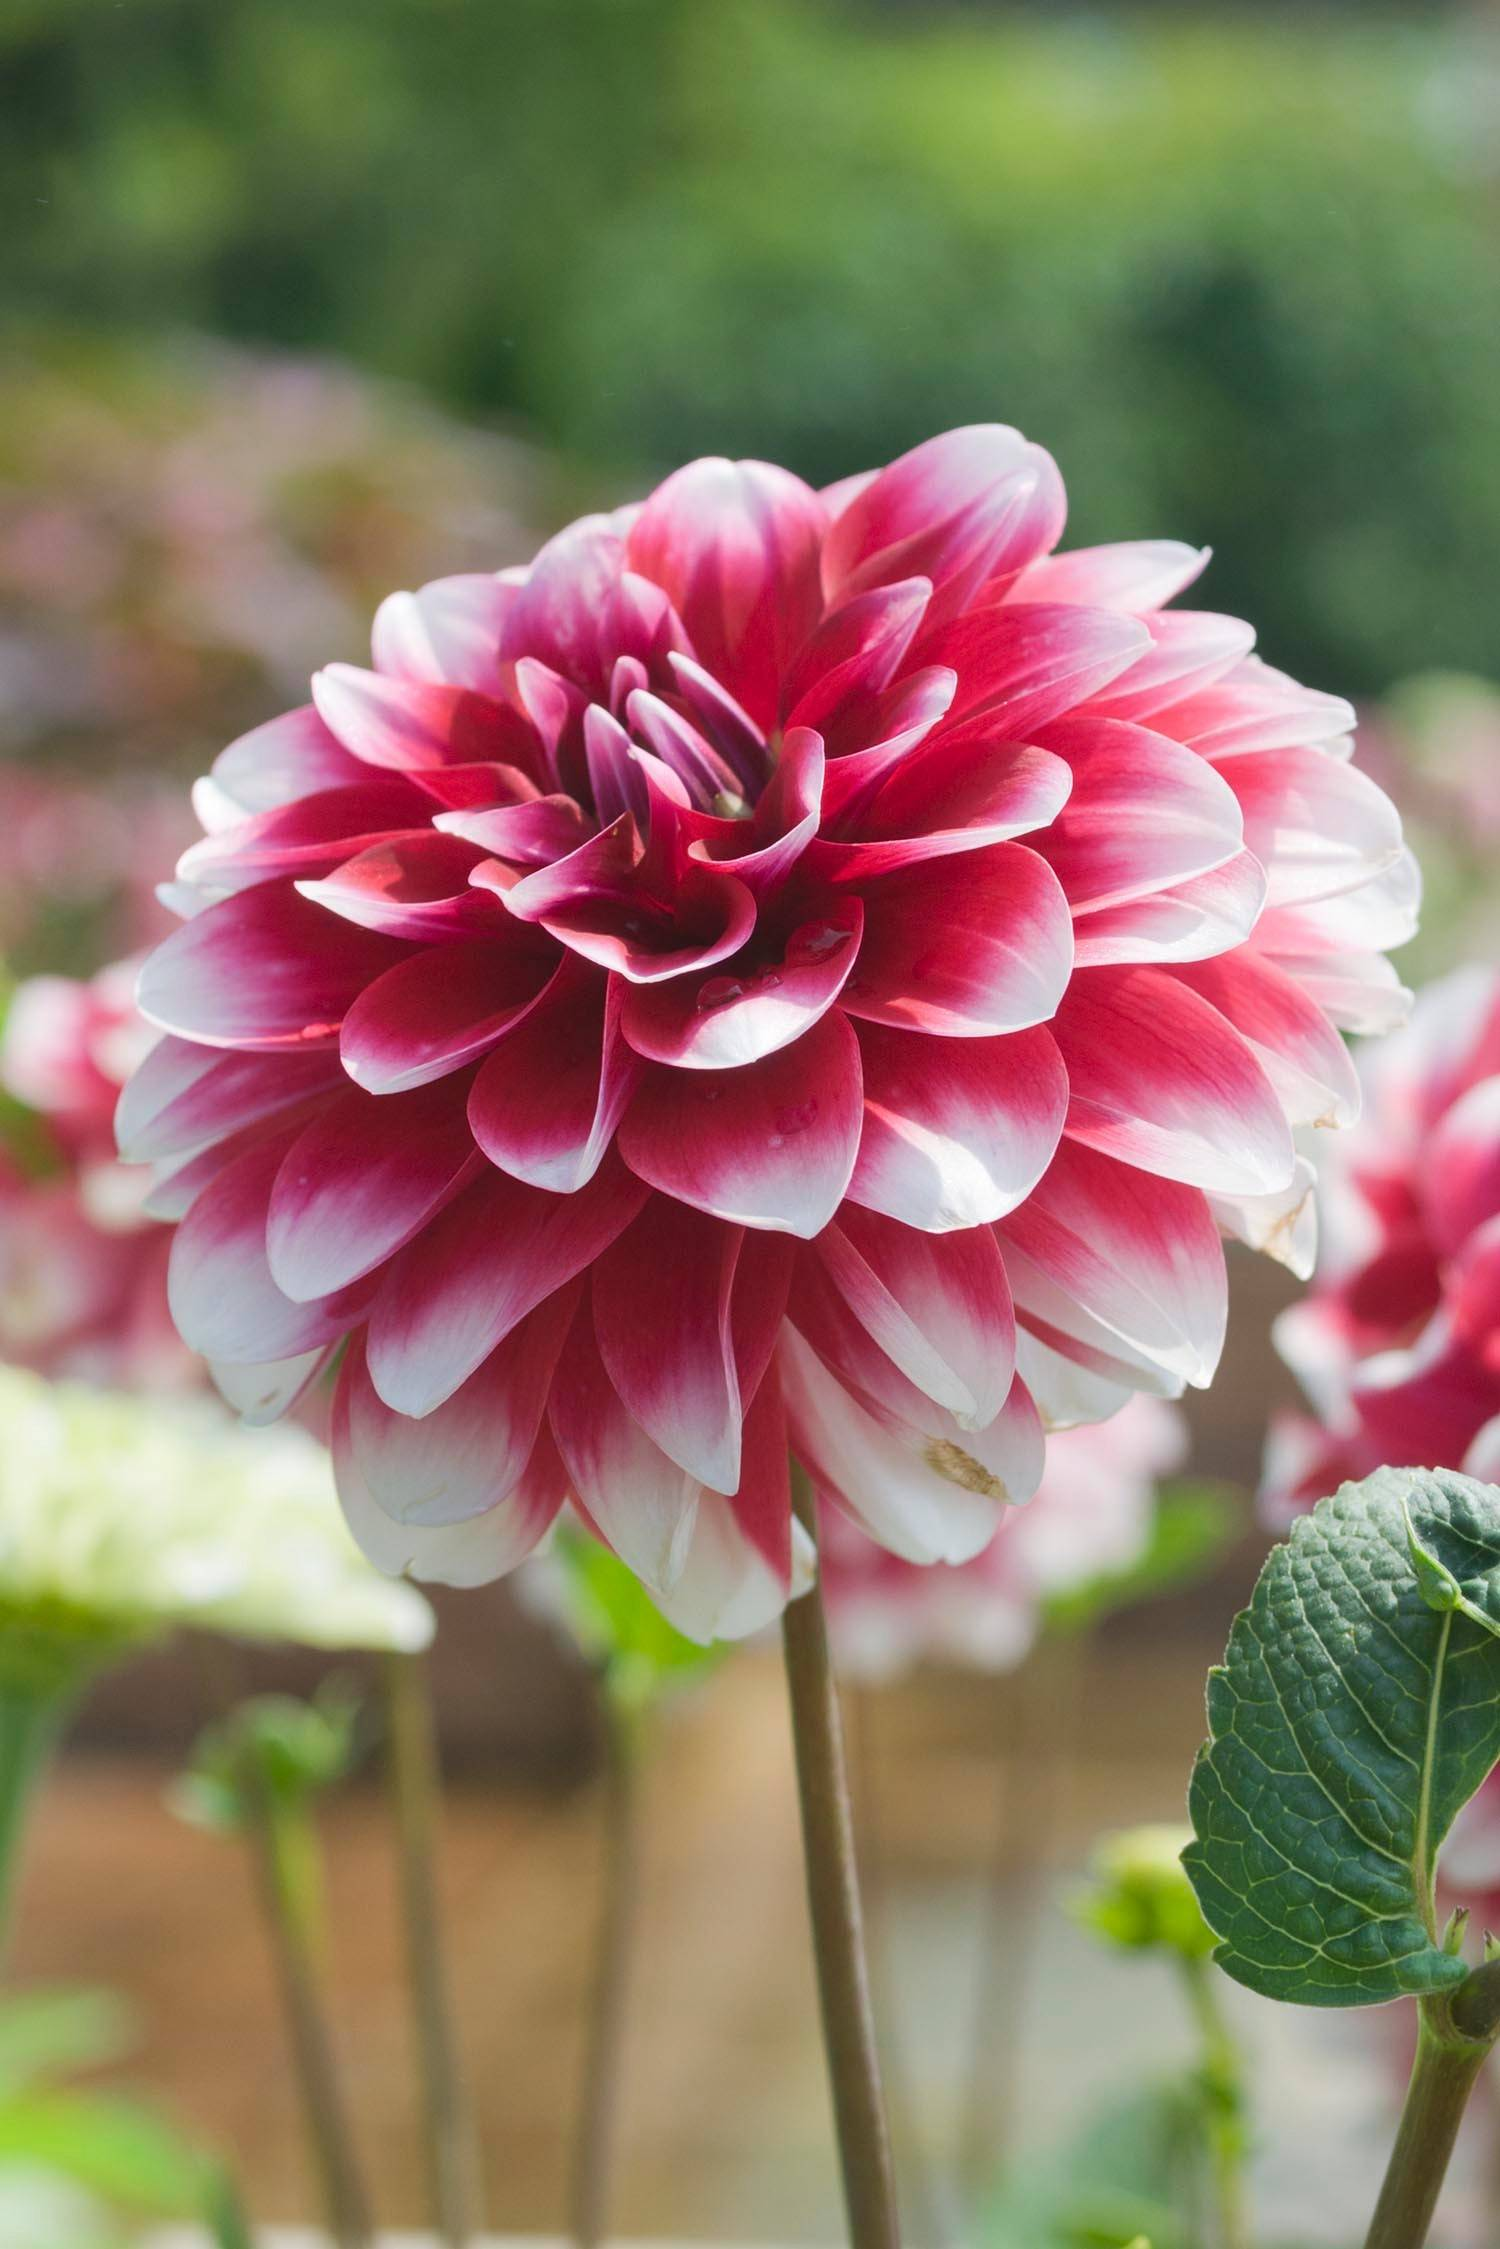 Provide support to dahlia plants to prevent stems breaking from wind damage.